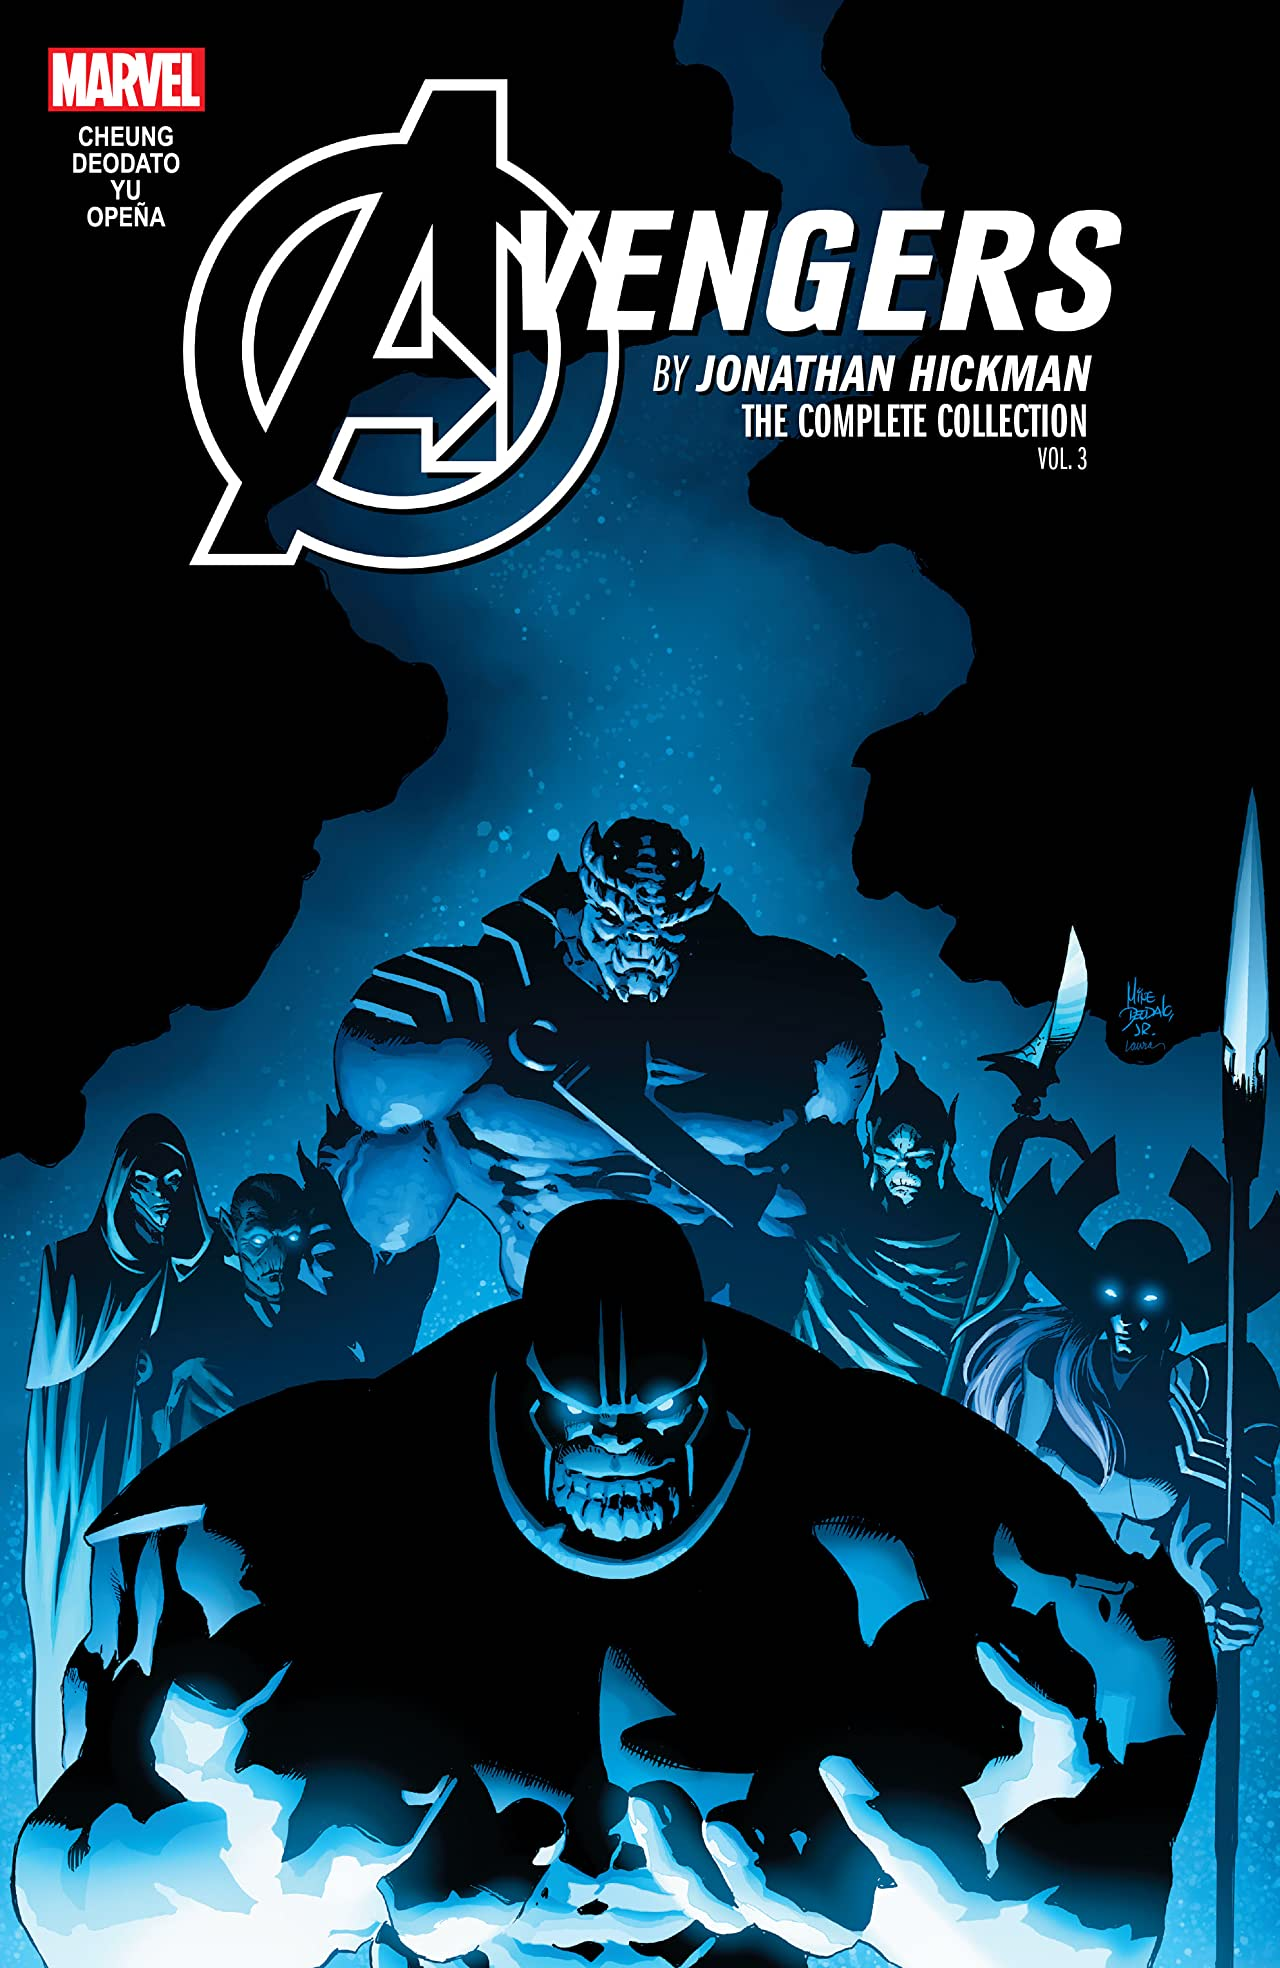 Avengers by Jonathan Hickman: The Complete Collection Vol. 3 (Trade Paperback)